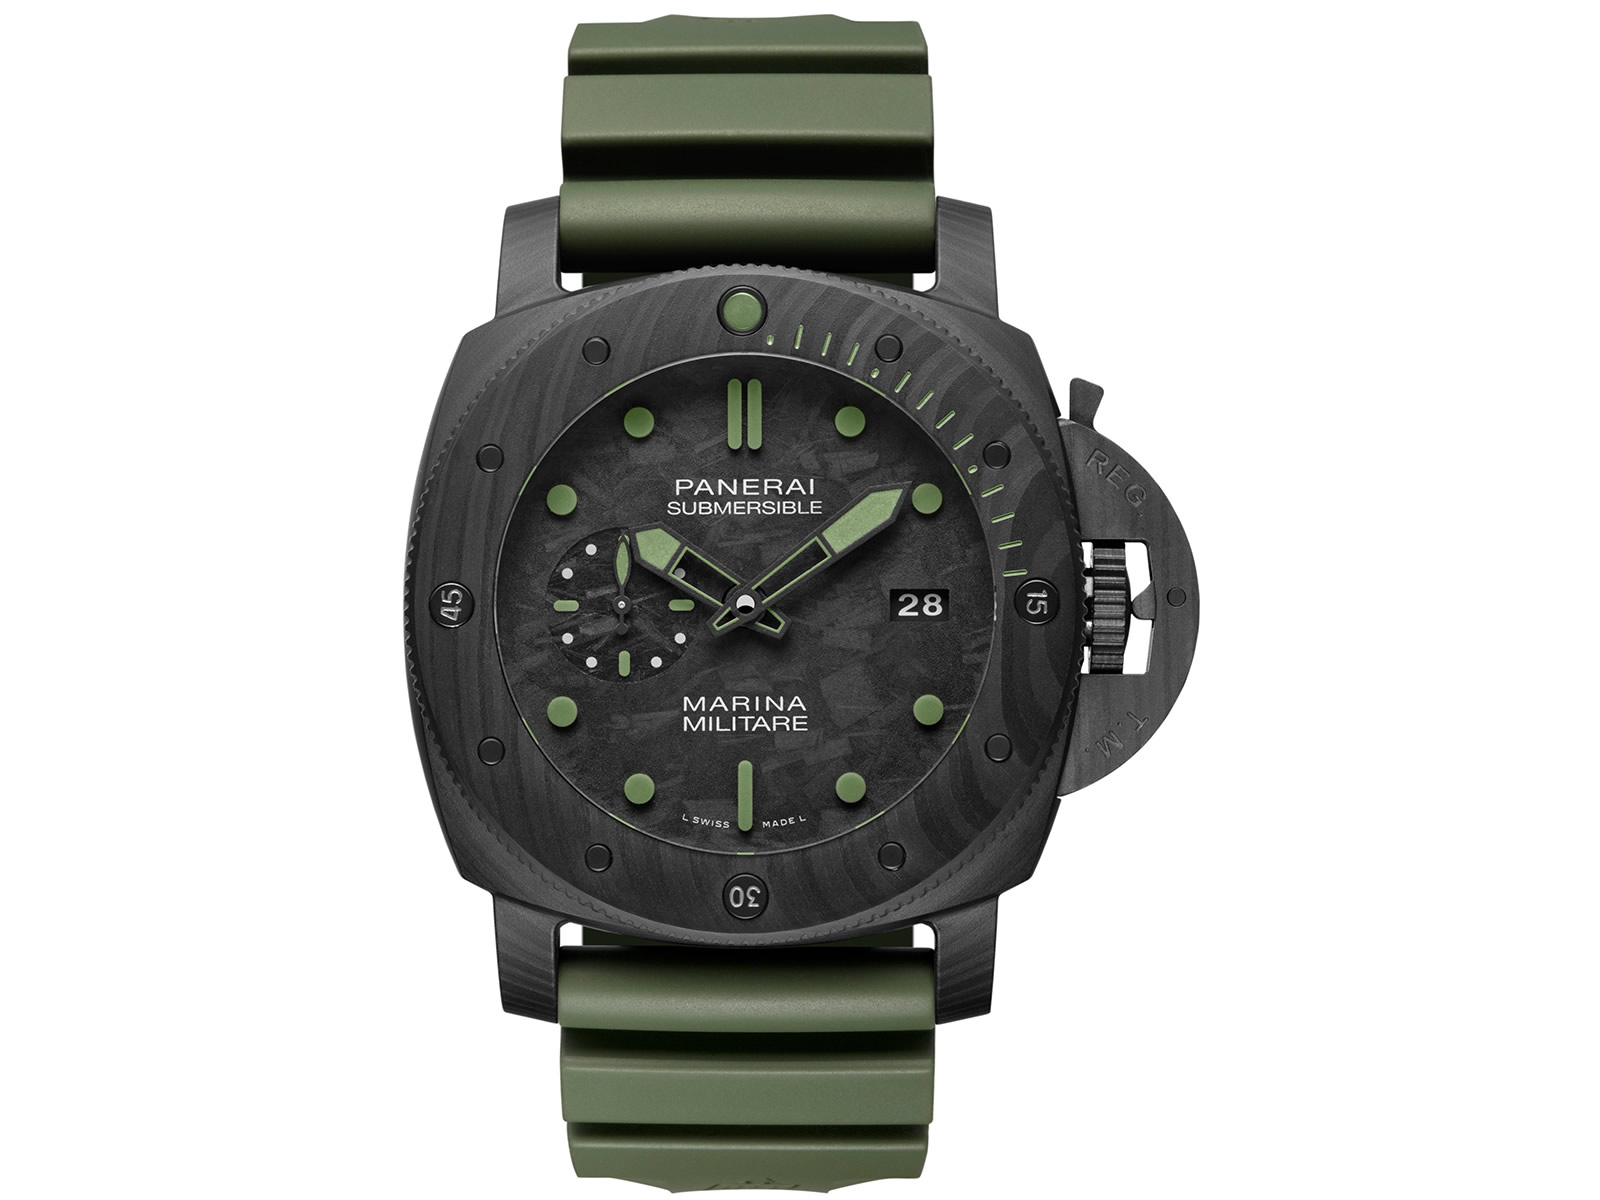 pam00961-officine-panerai-submersible-marina-militare-carbotech-6-.jpg